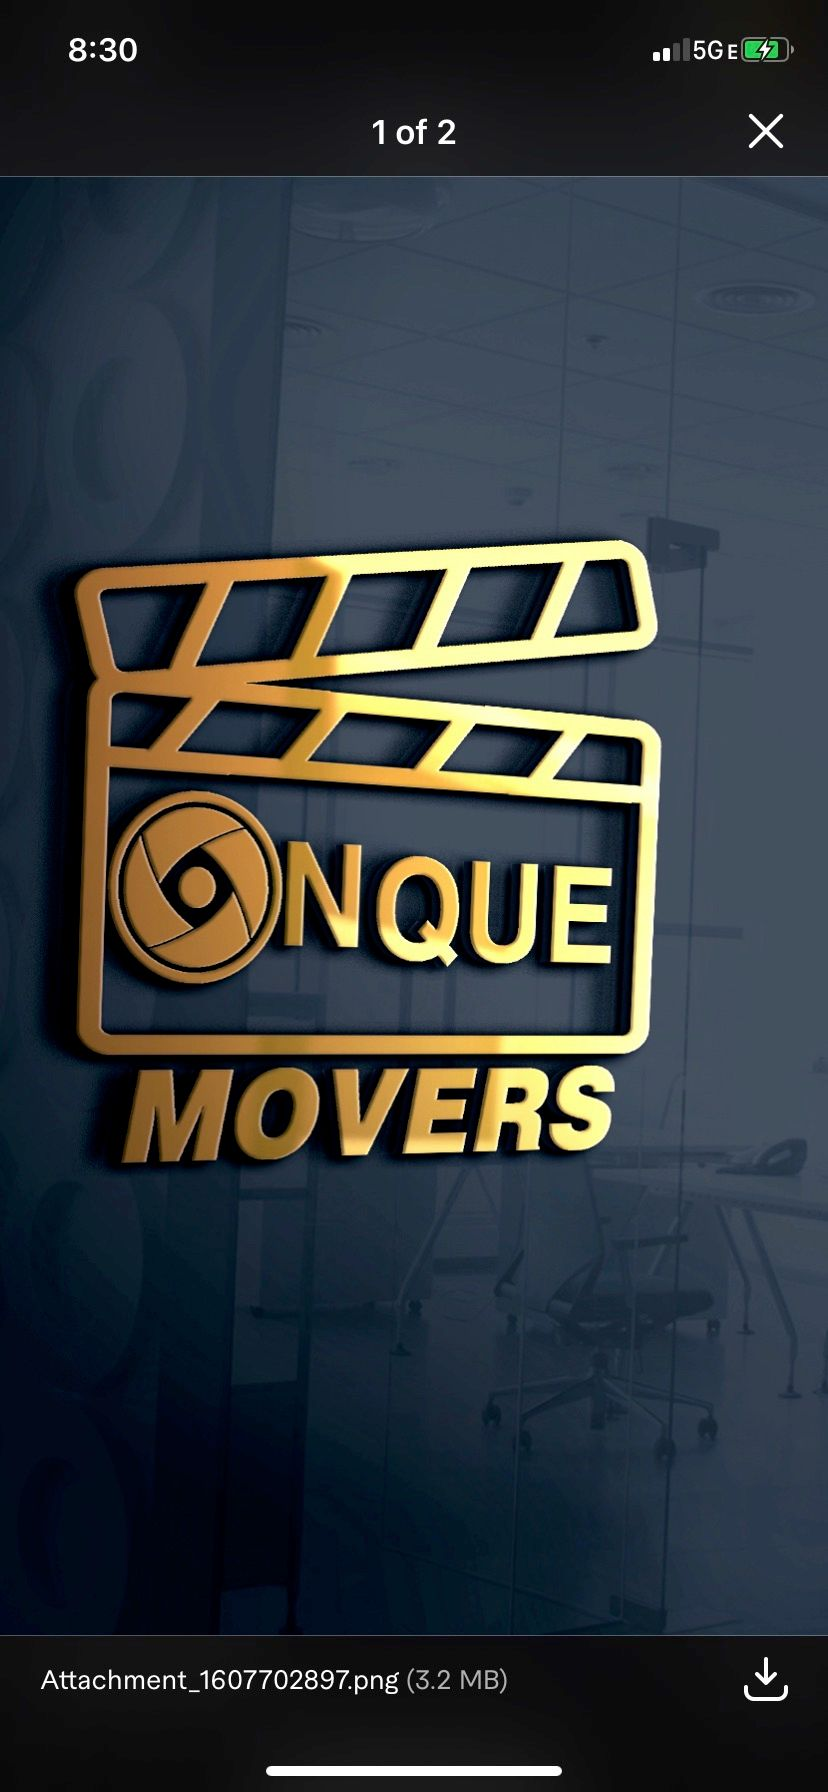 On Que Movers